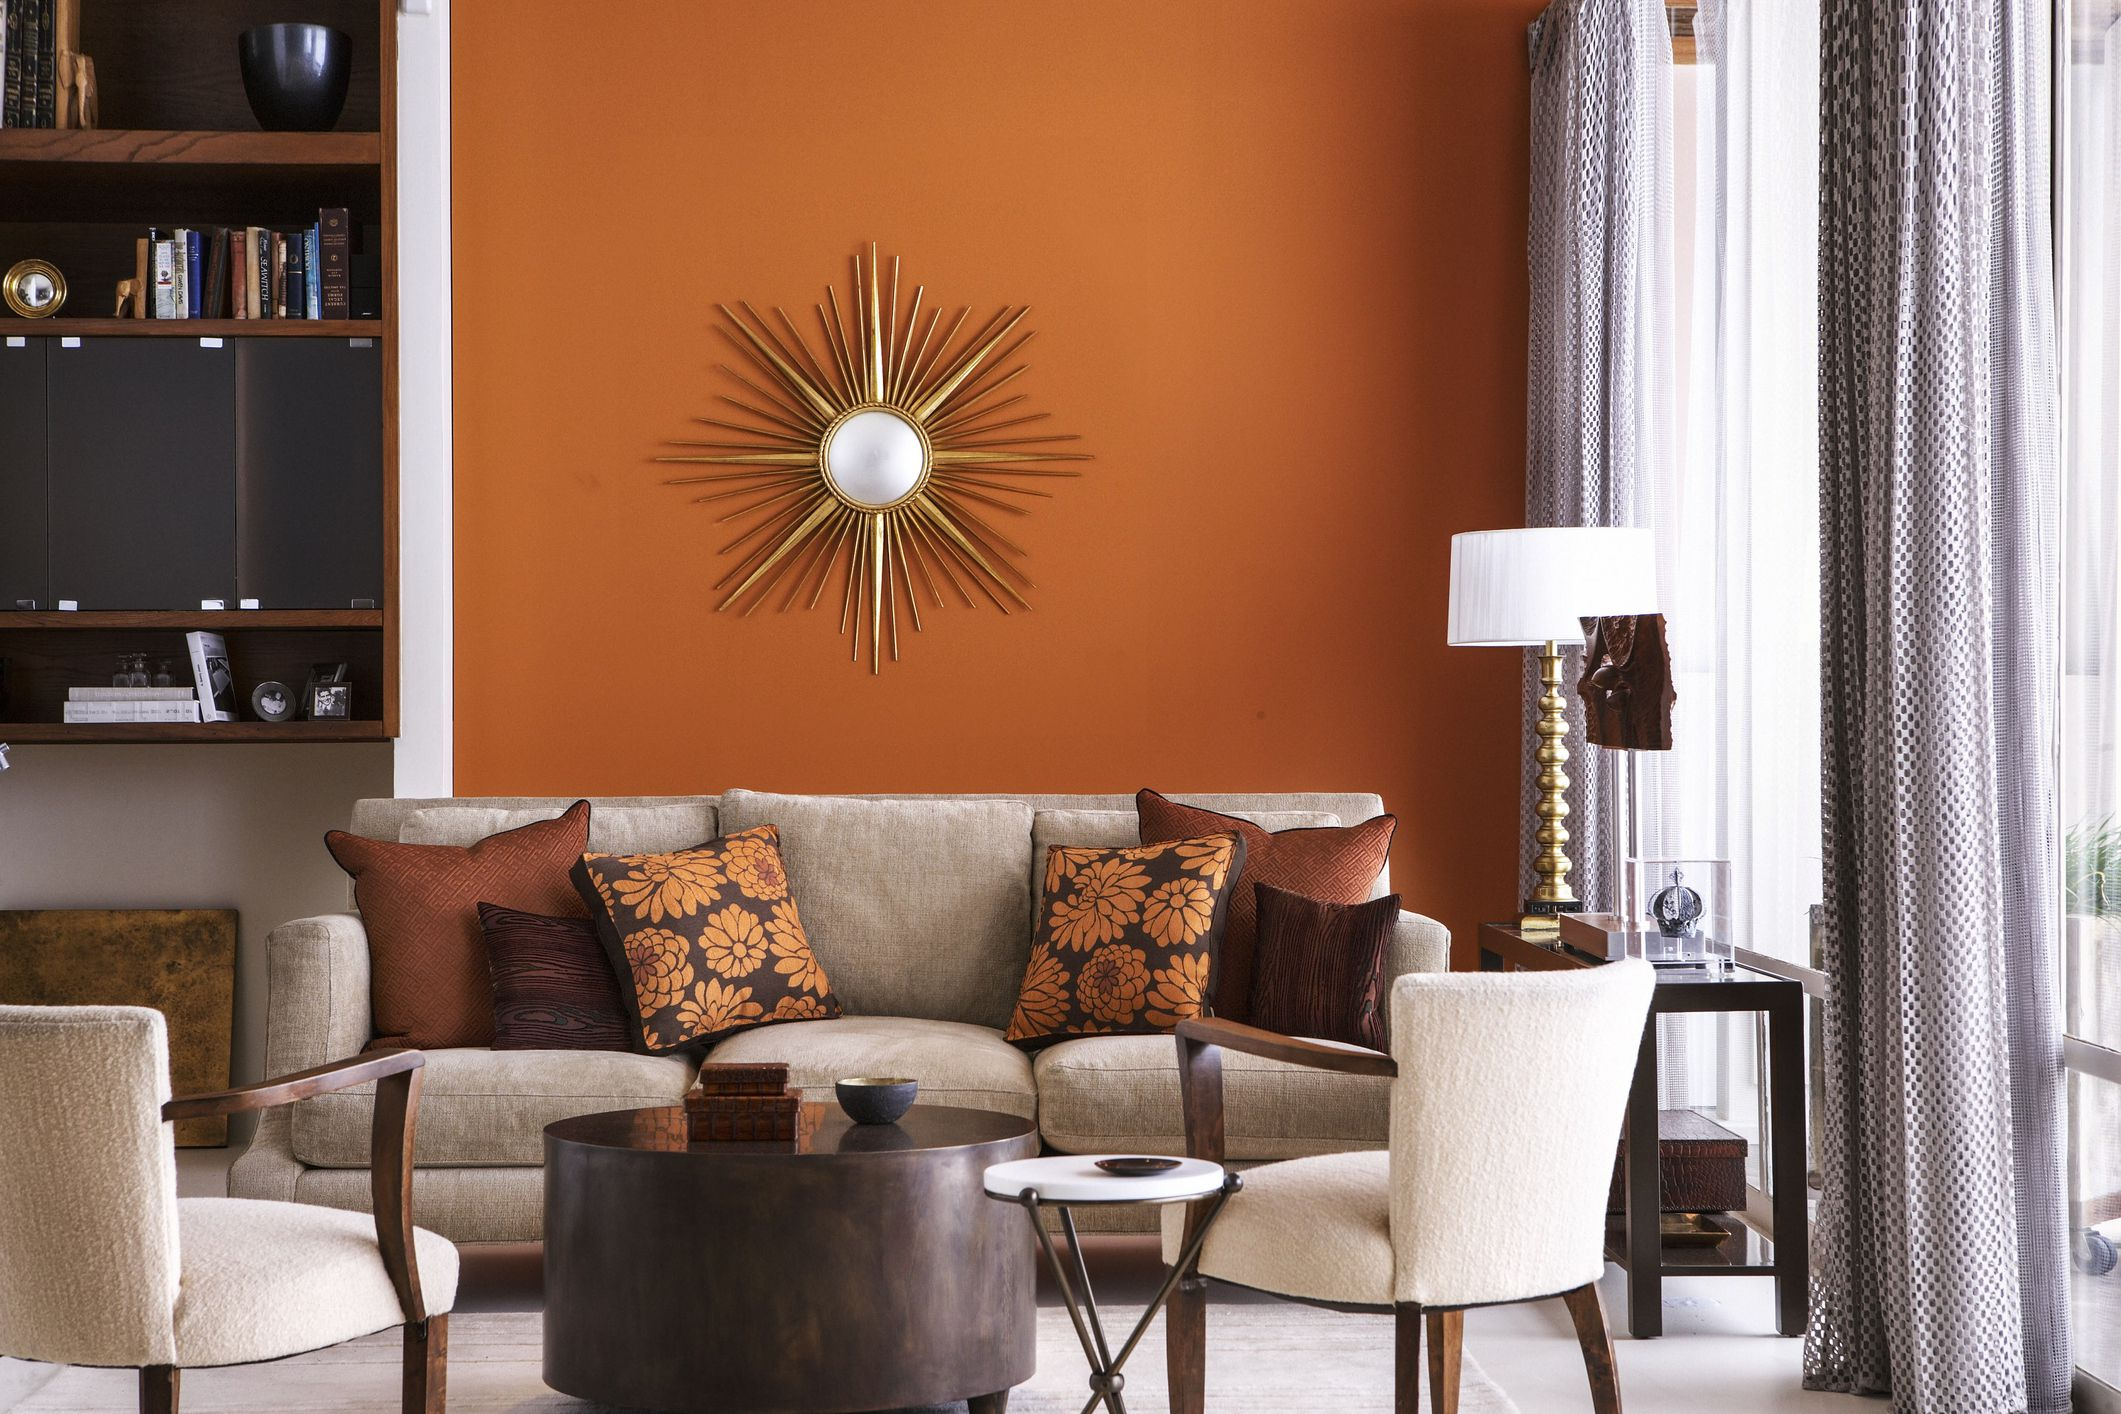 Decorating With A Warm Color Scheme: decorating color schemes